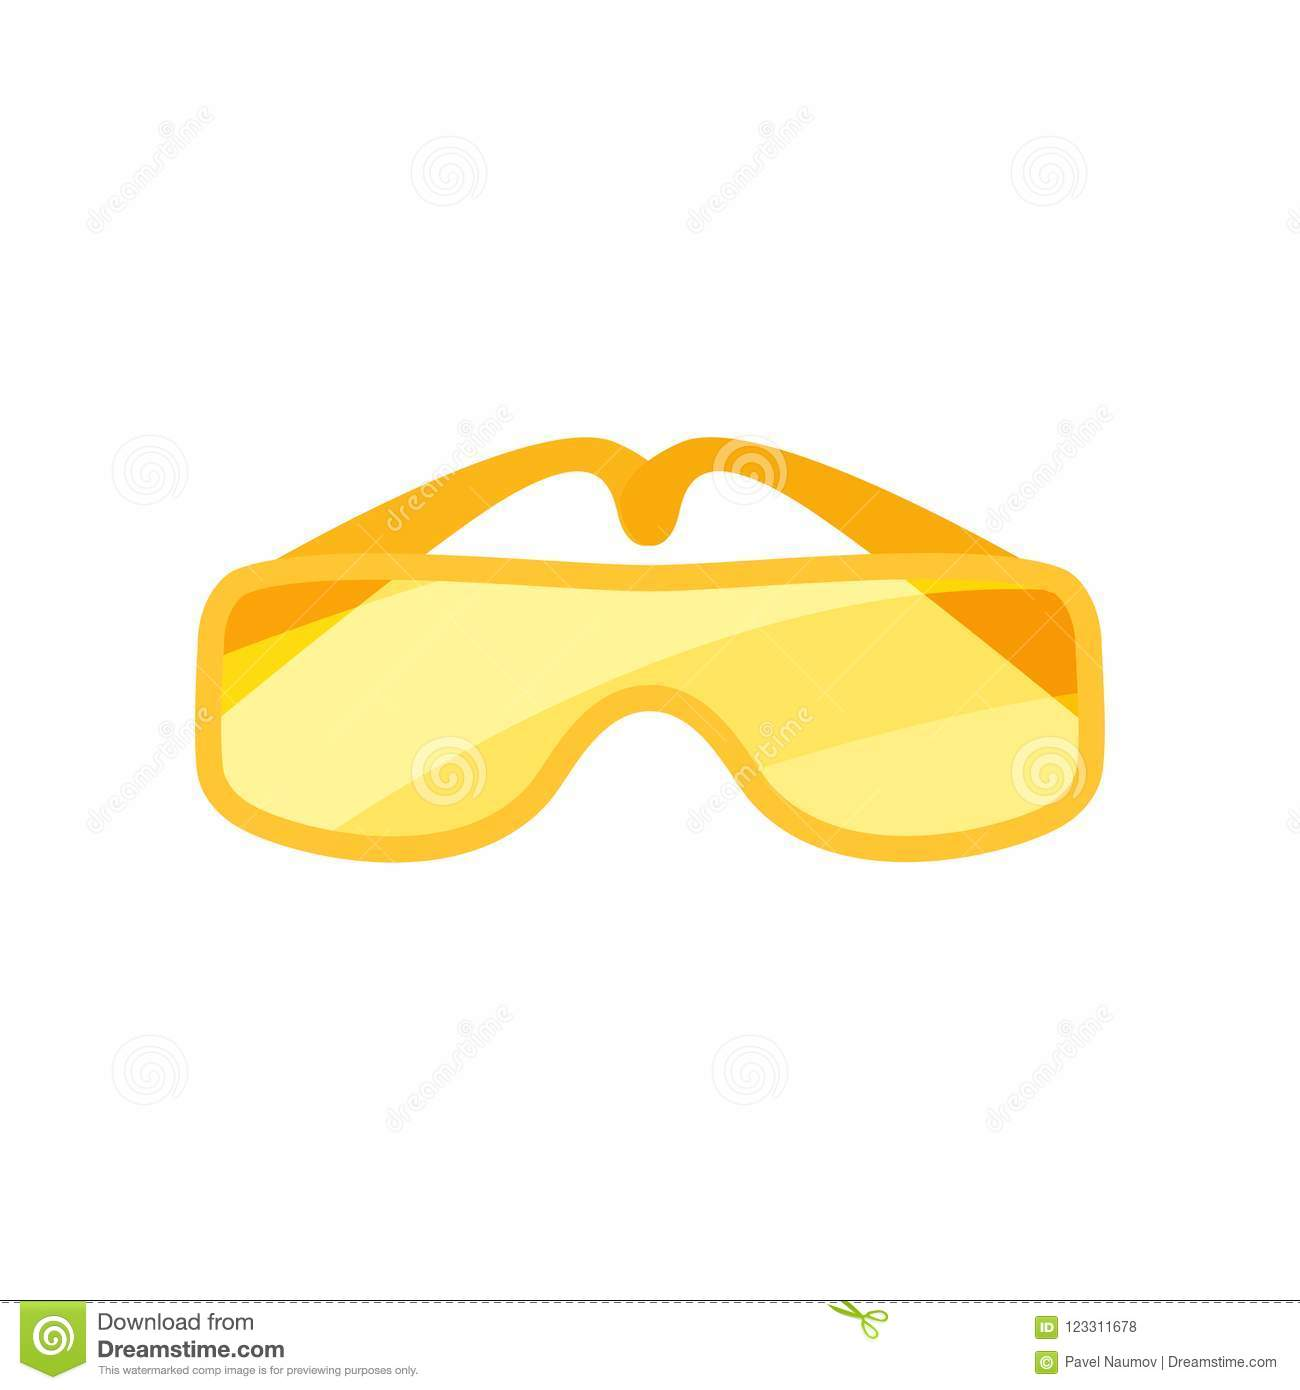 Flat vector icon of safety goggles. Glasses with orange lenses. Protective eyewear for workers. Industrial safety